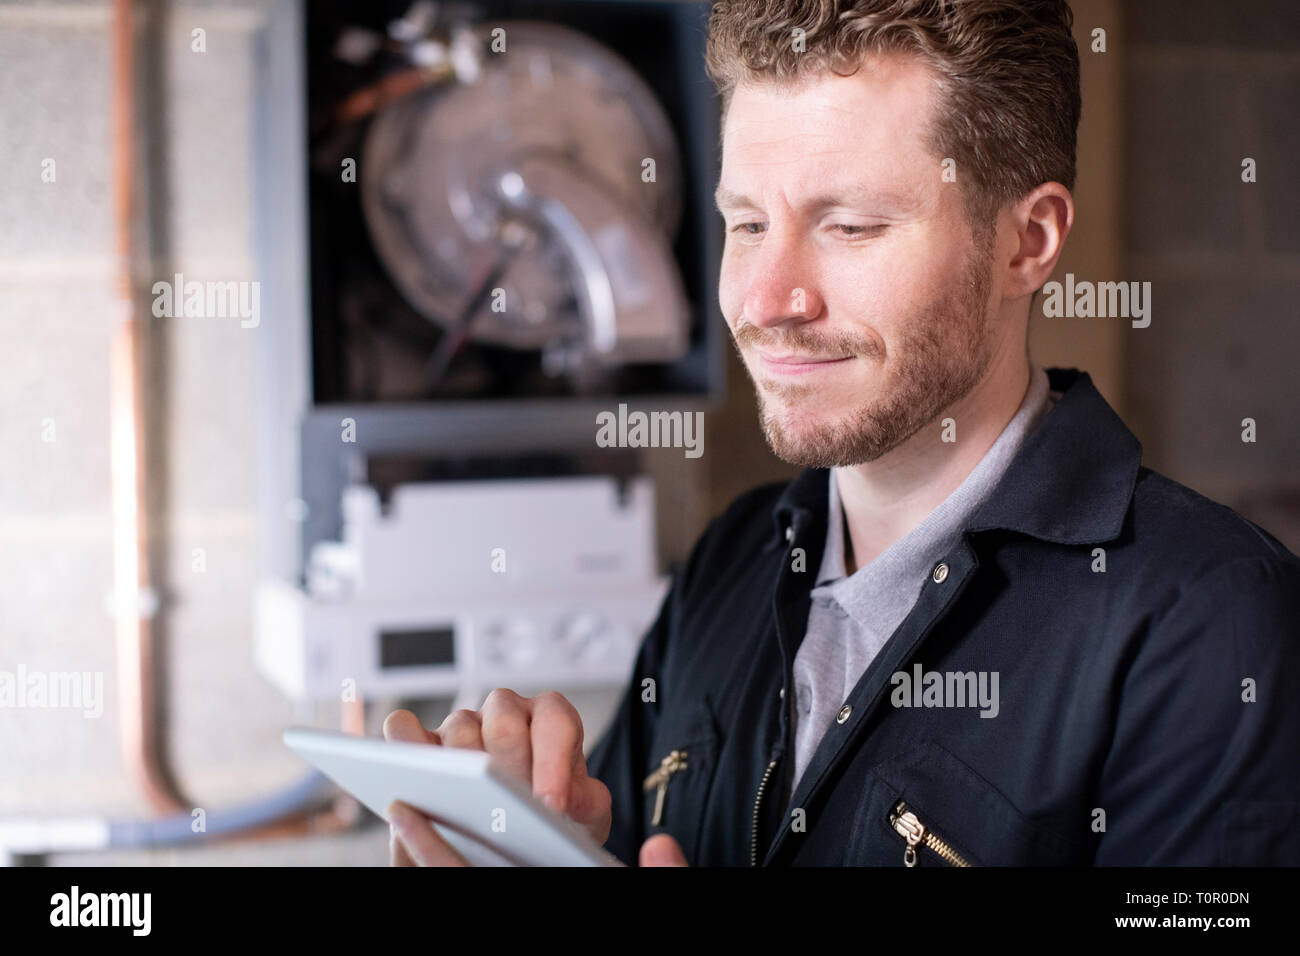 Male Heating Engineer Servicing Central Heating Boiler Using Digital Tablet - Stock Image